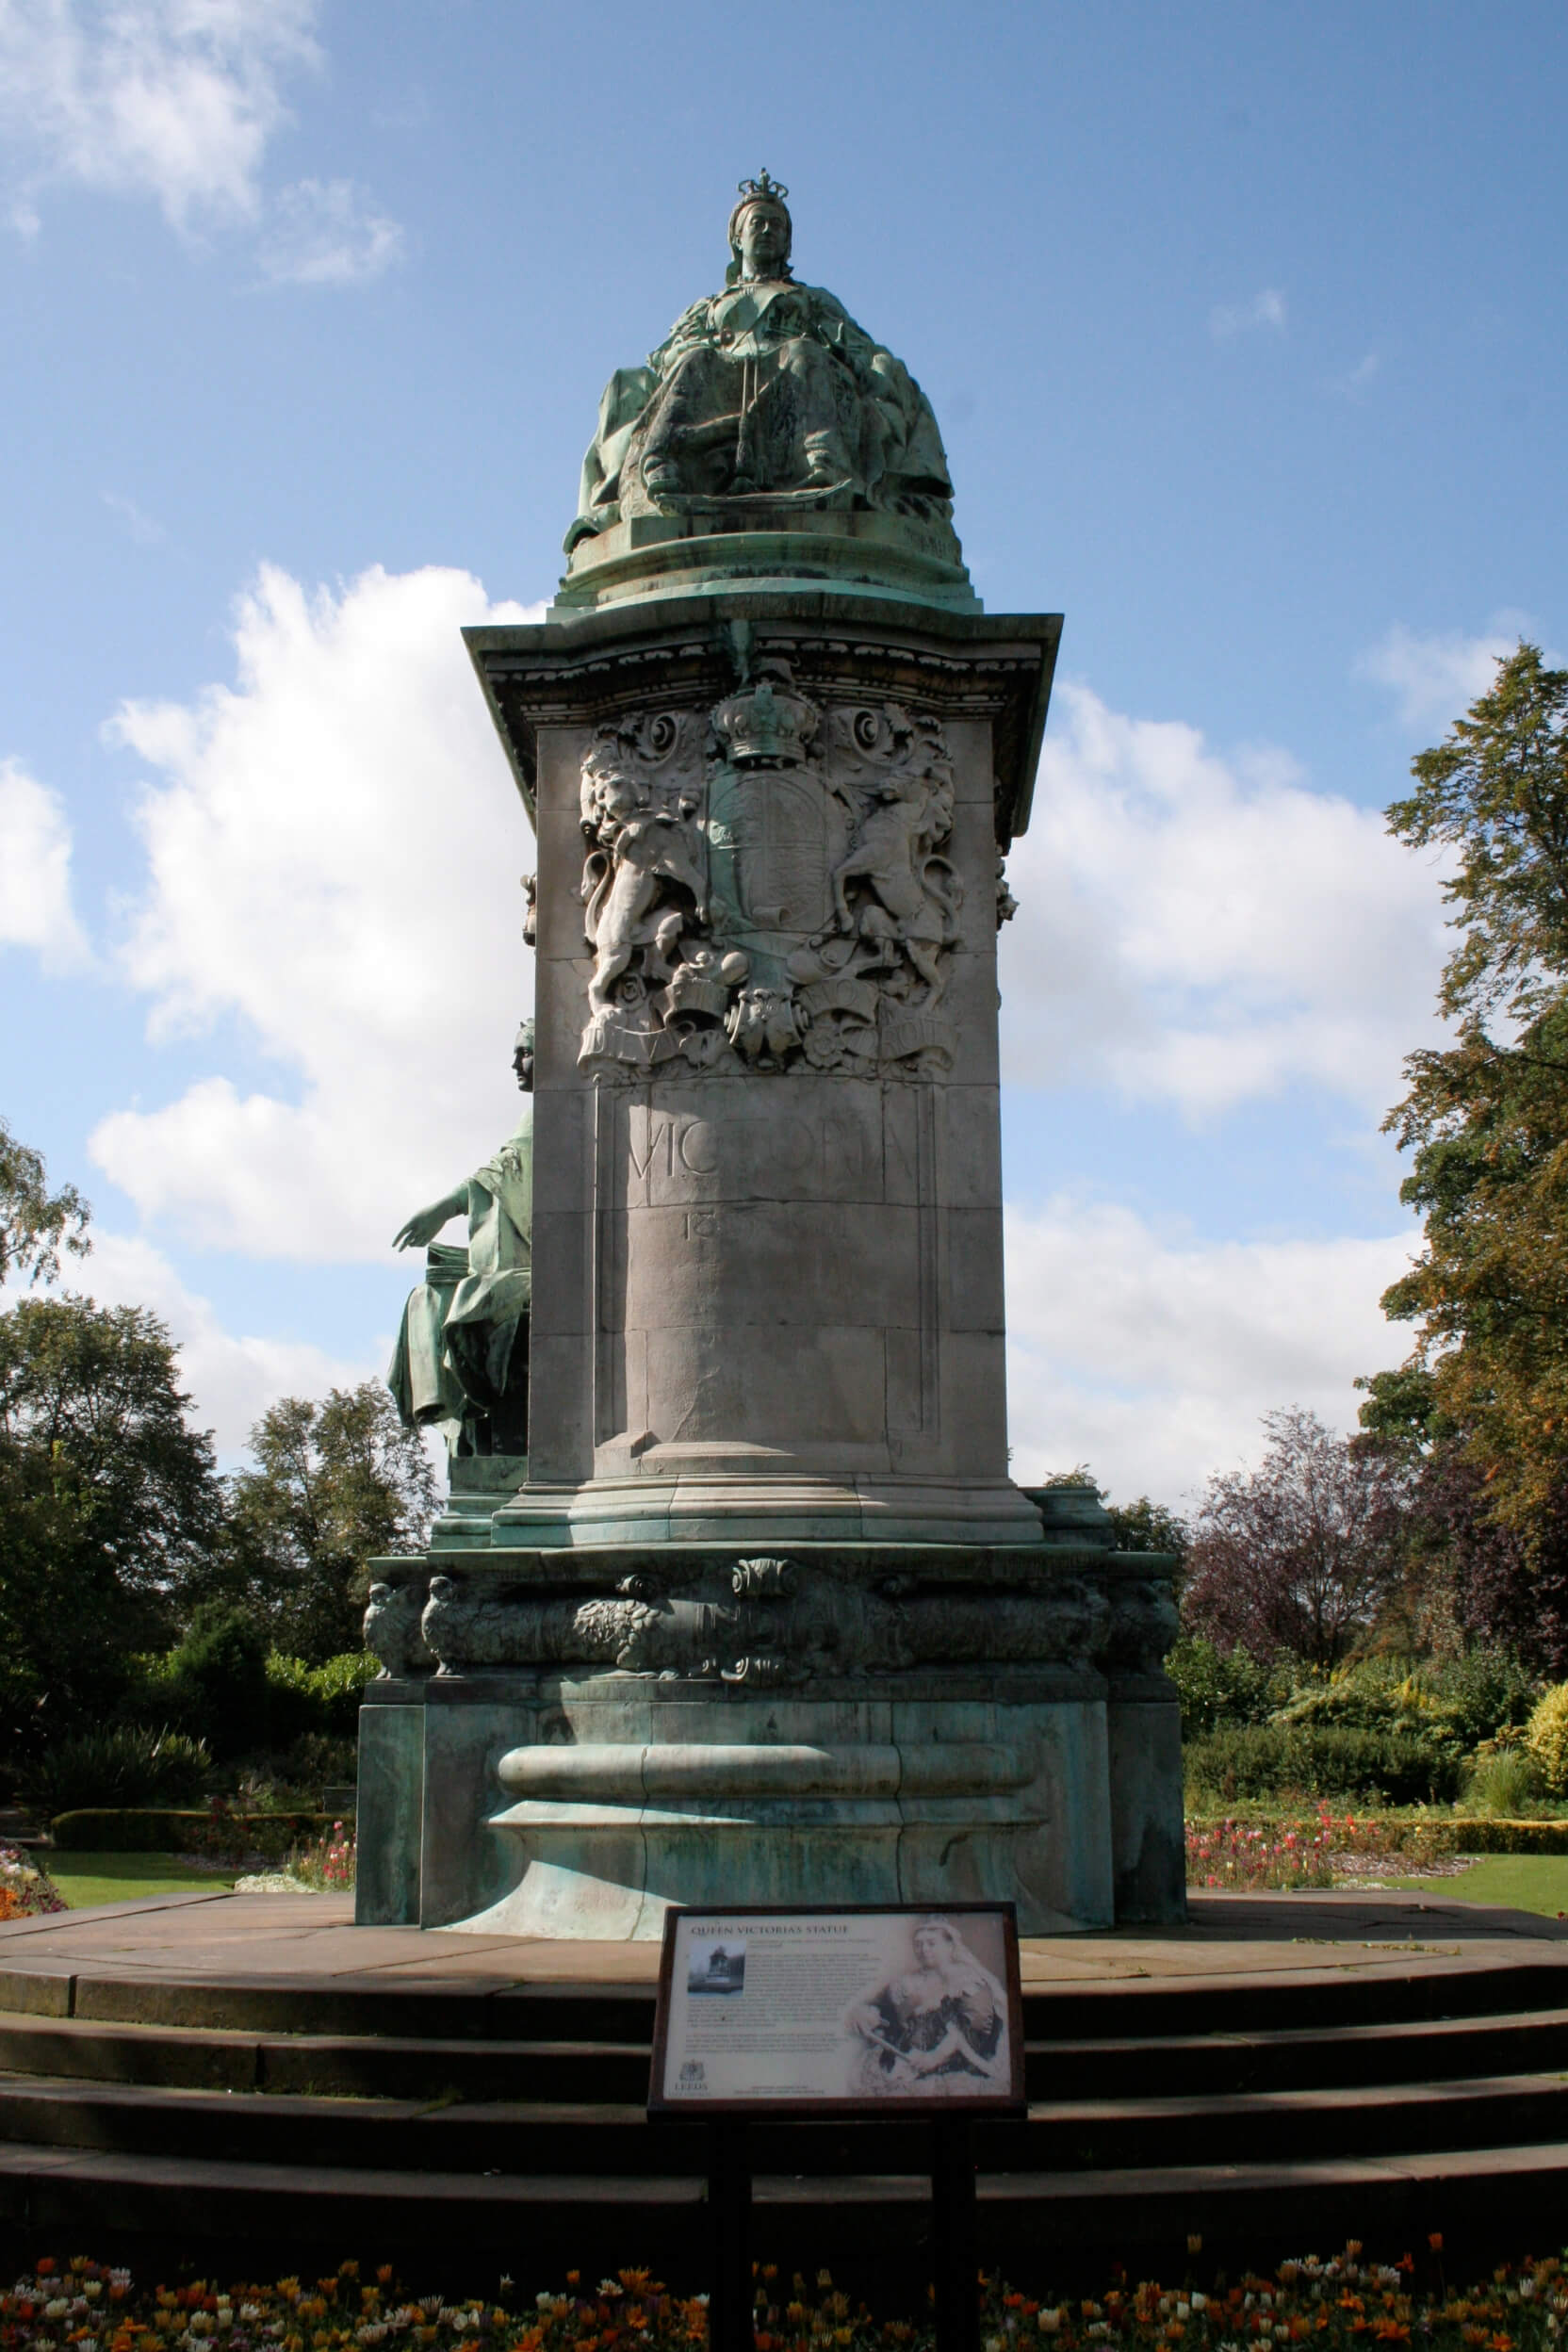 Photo of the memorial to Queen Victoria which is a short plinth with the monarch seated at the top